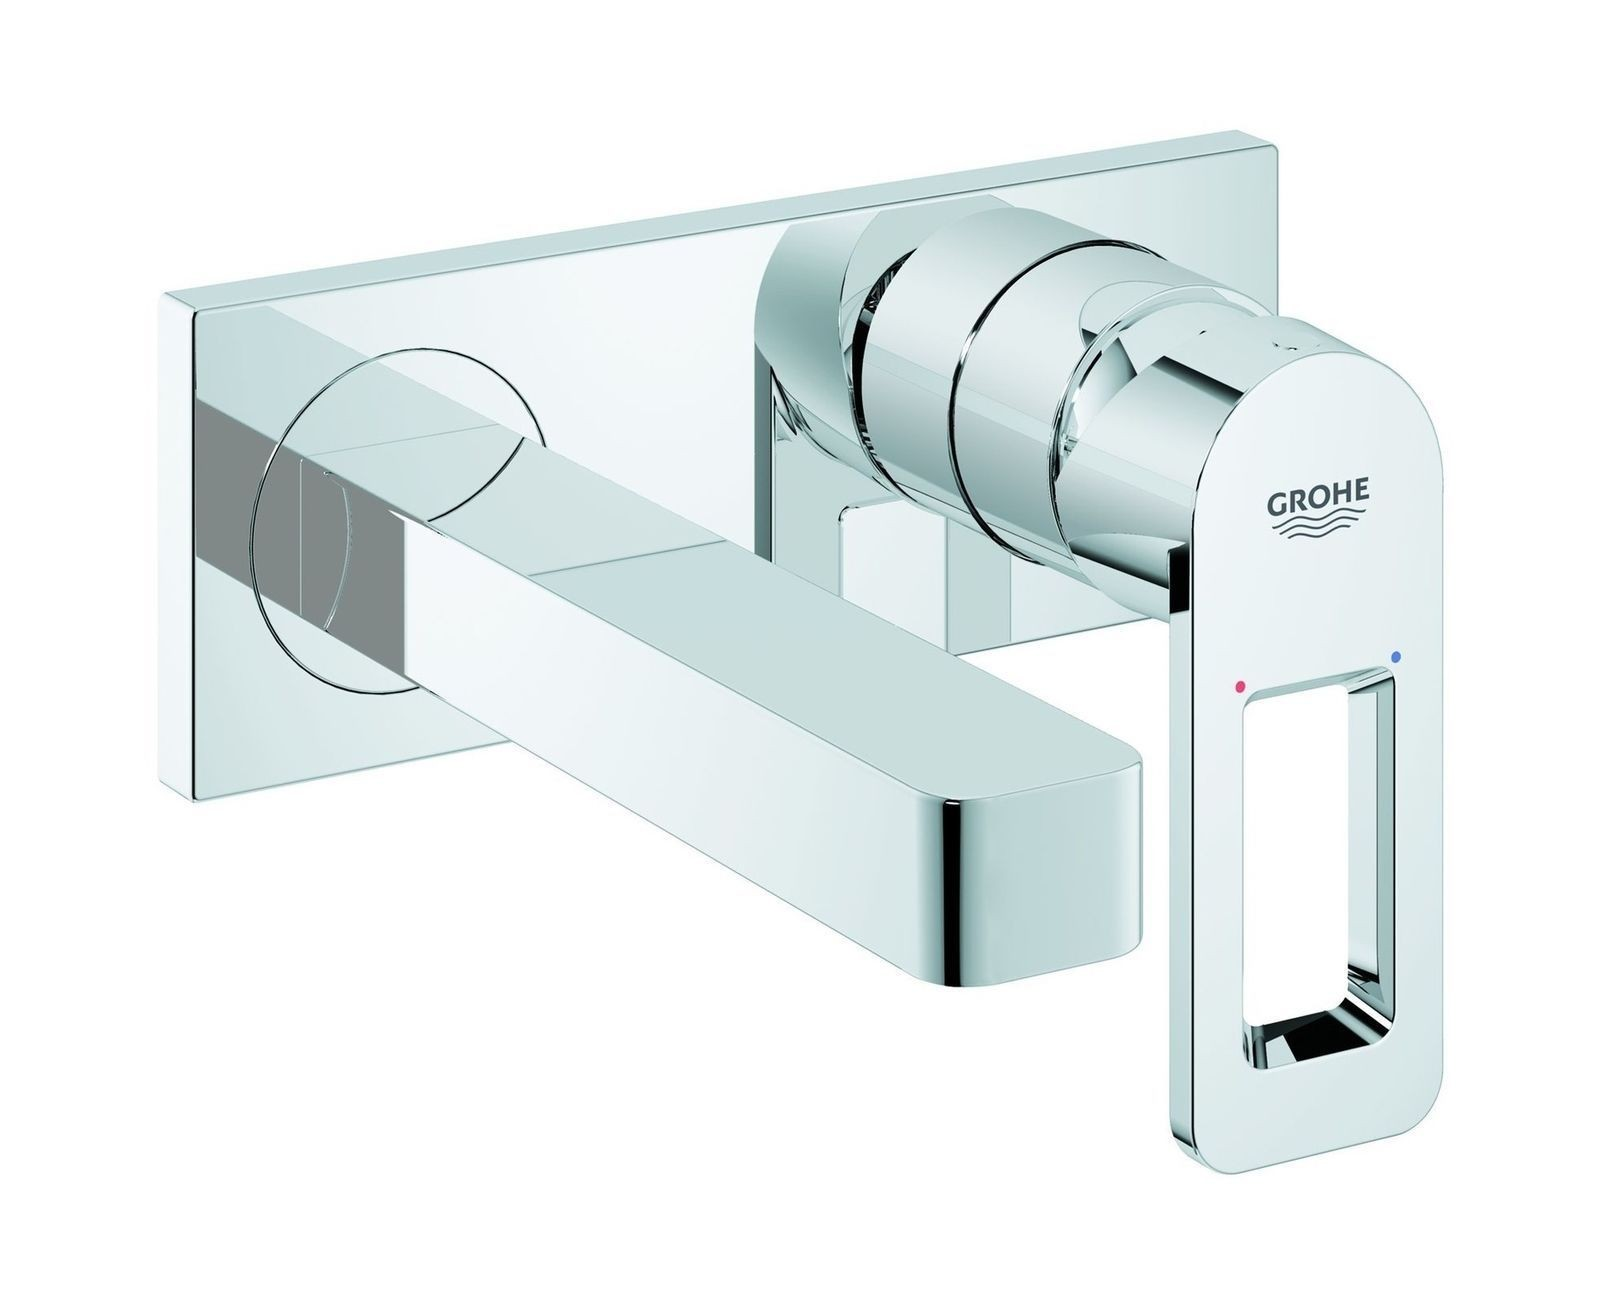 Grohe Quadra 2-hole Basin Mixer Tap Concealed Wall Mount Bathroom M...